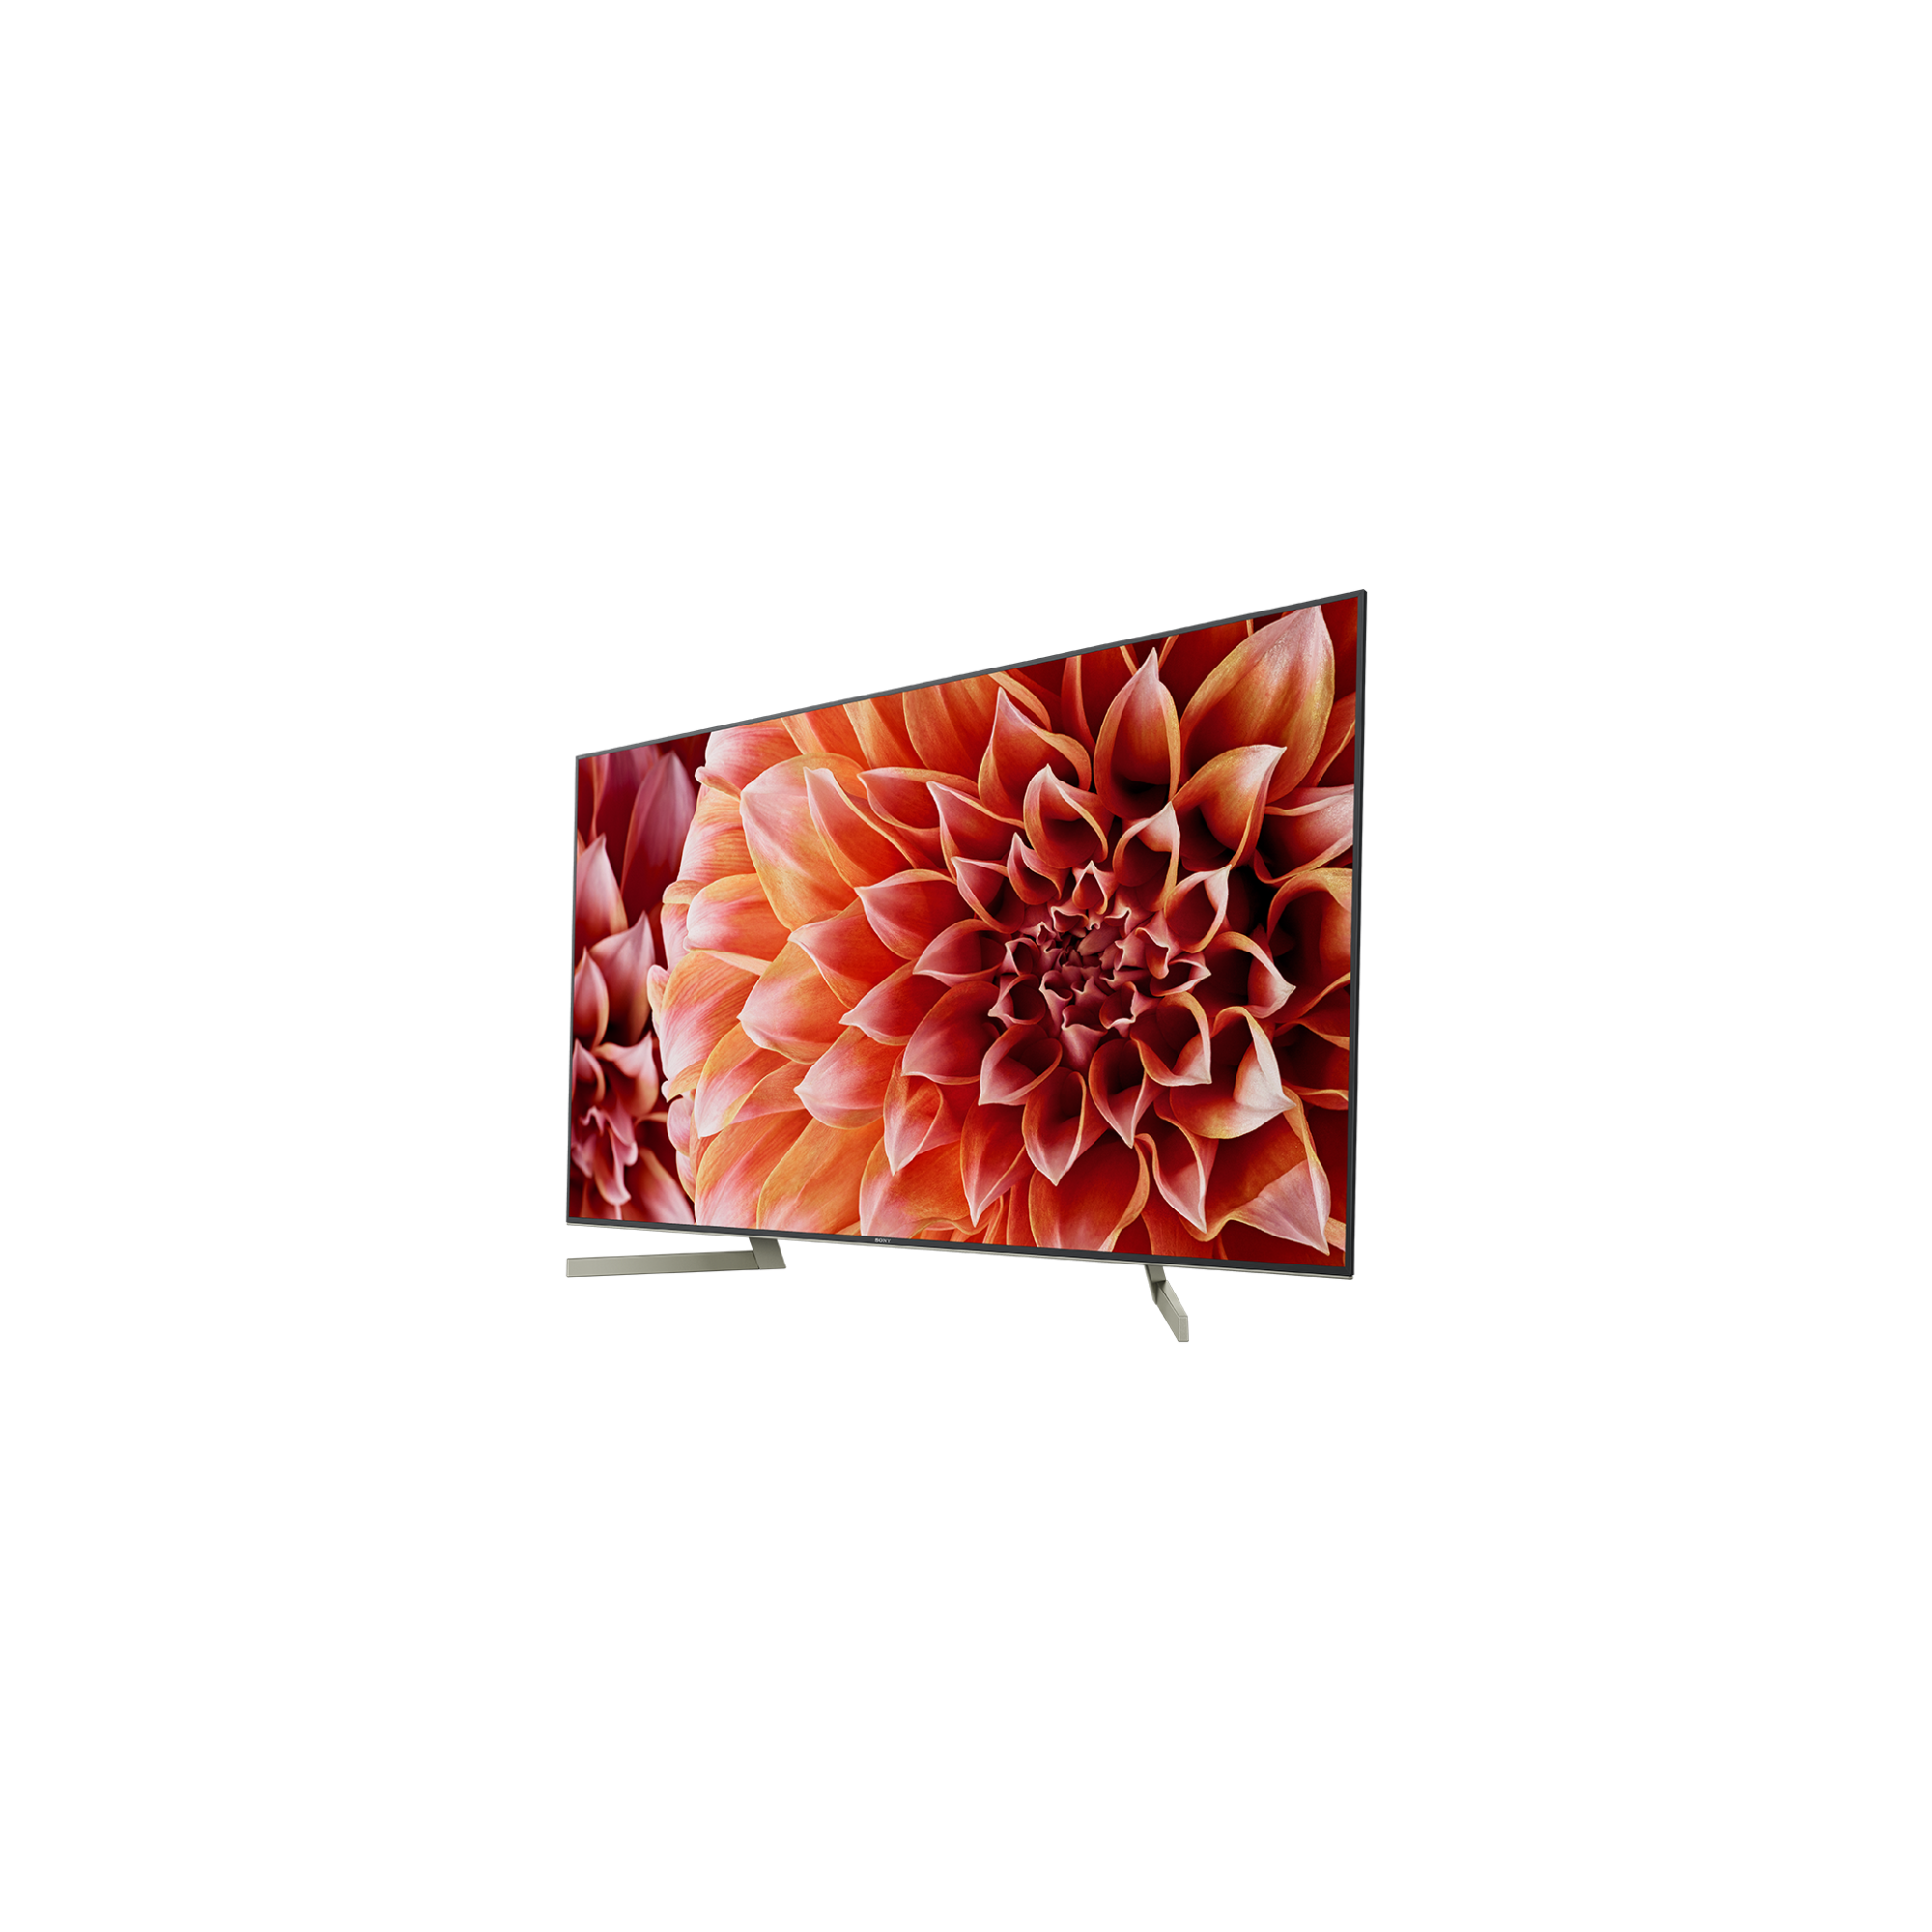 """55"""" X90F LED 4K Ultra HDR Android TV with Dolby Vision, , product-image"""